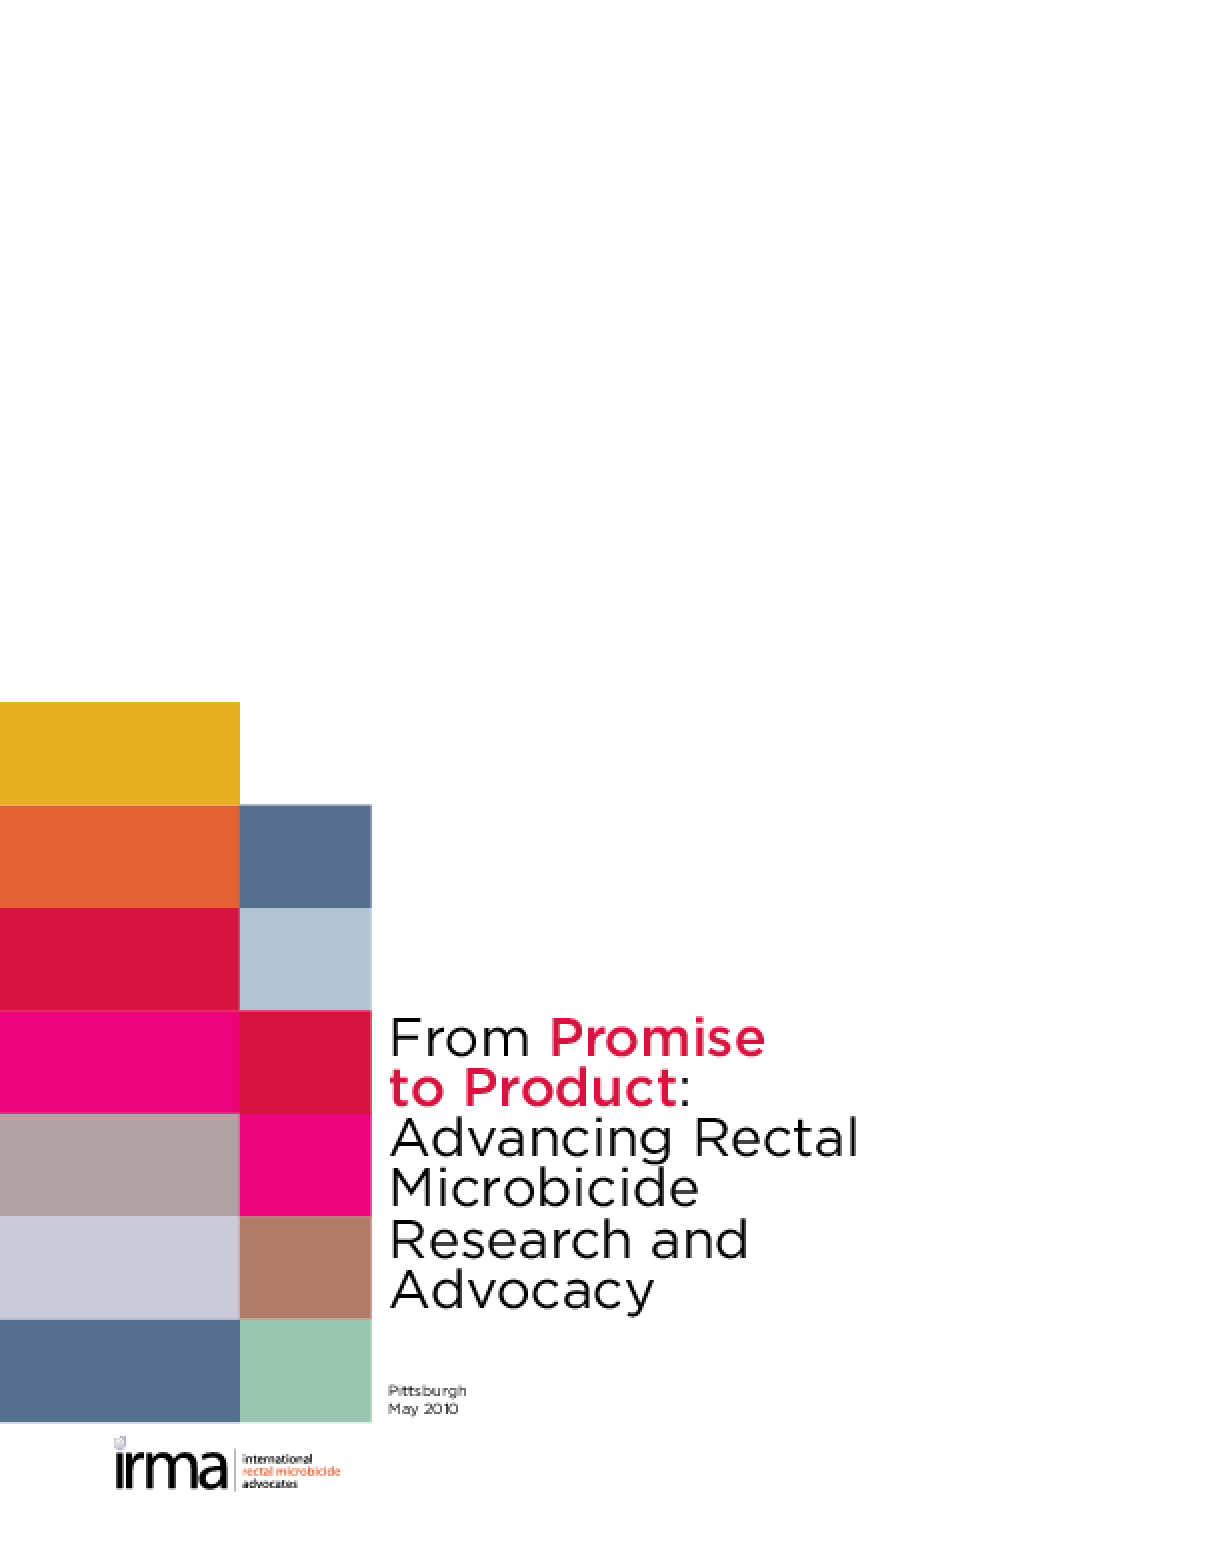 From Product to Promise - Advancing Rectal Microbicide Research and Advocacy